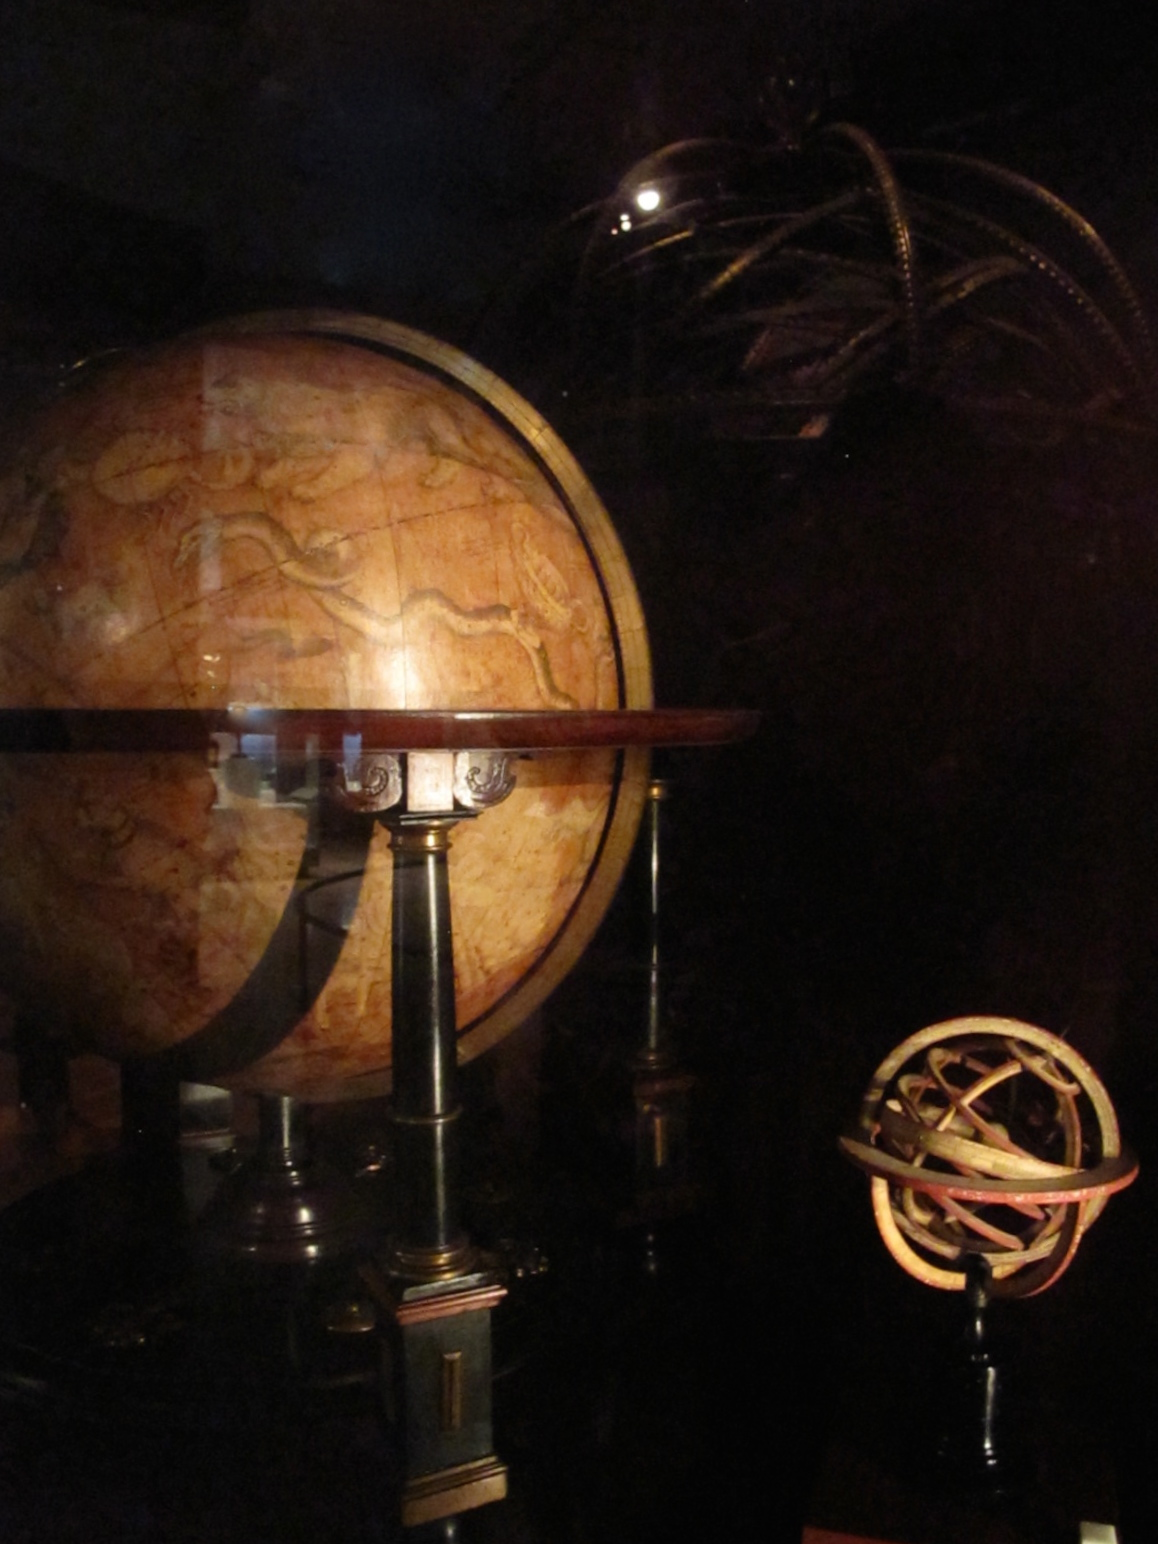 Museo Galileo medieval globes of the world